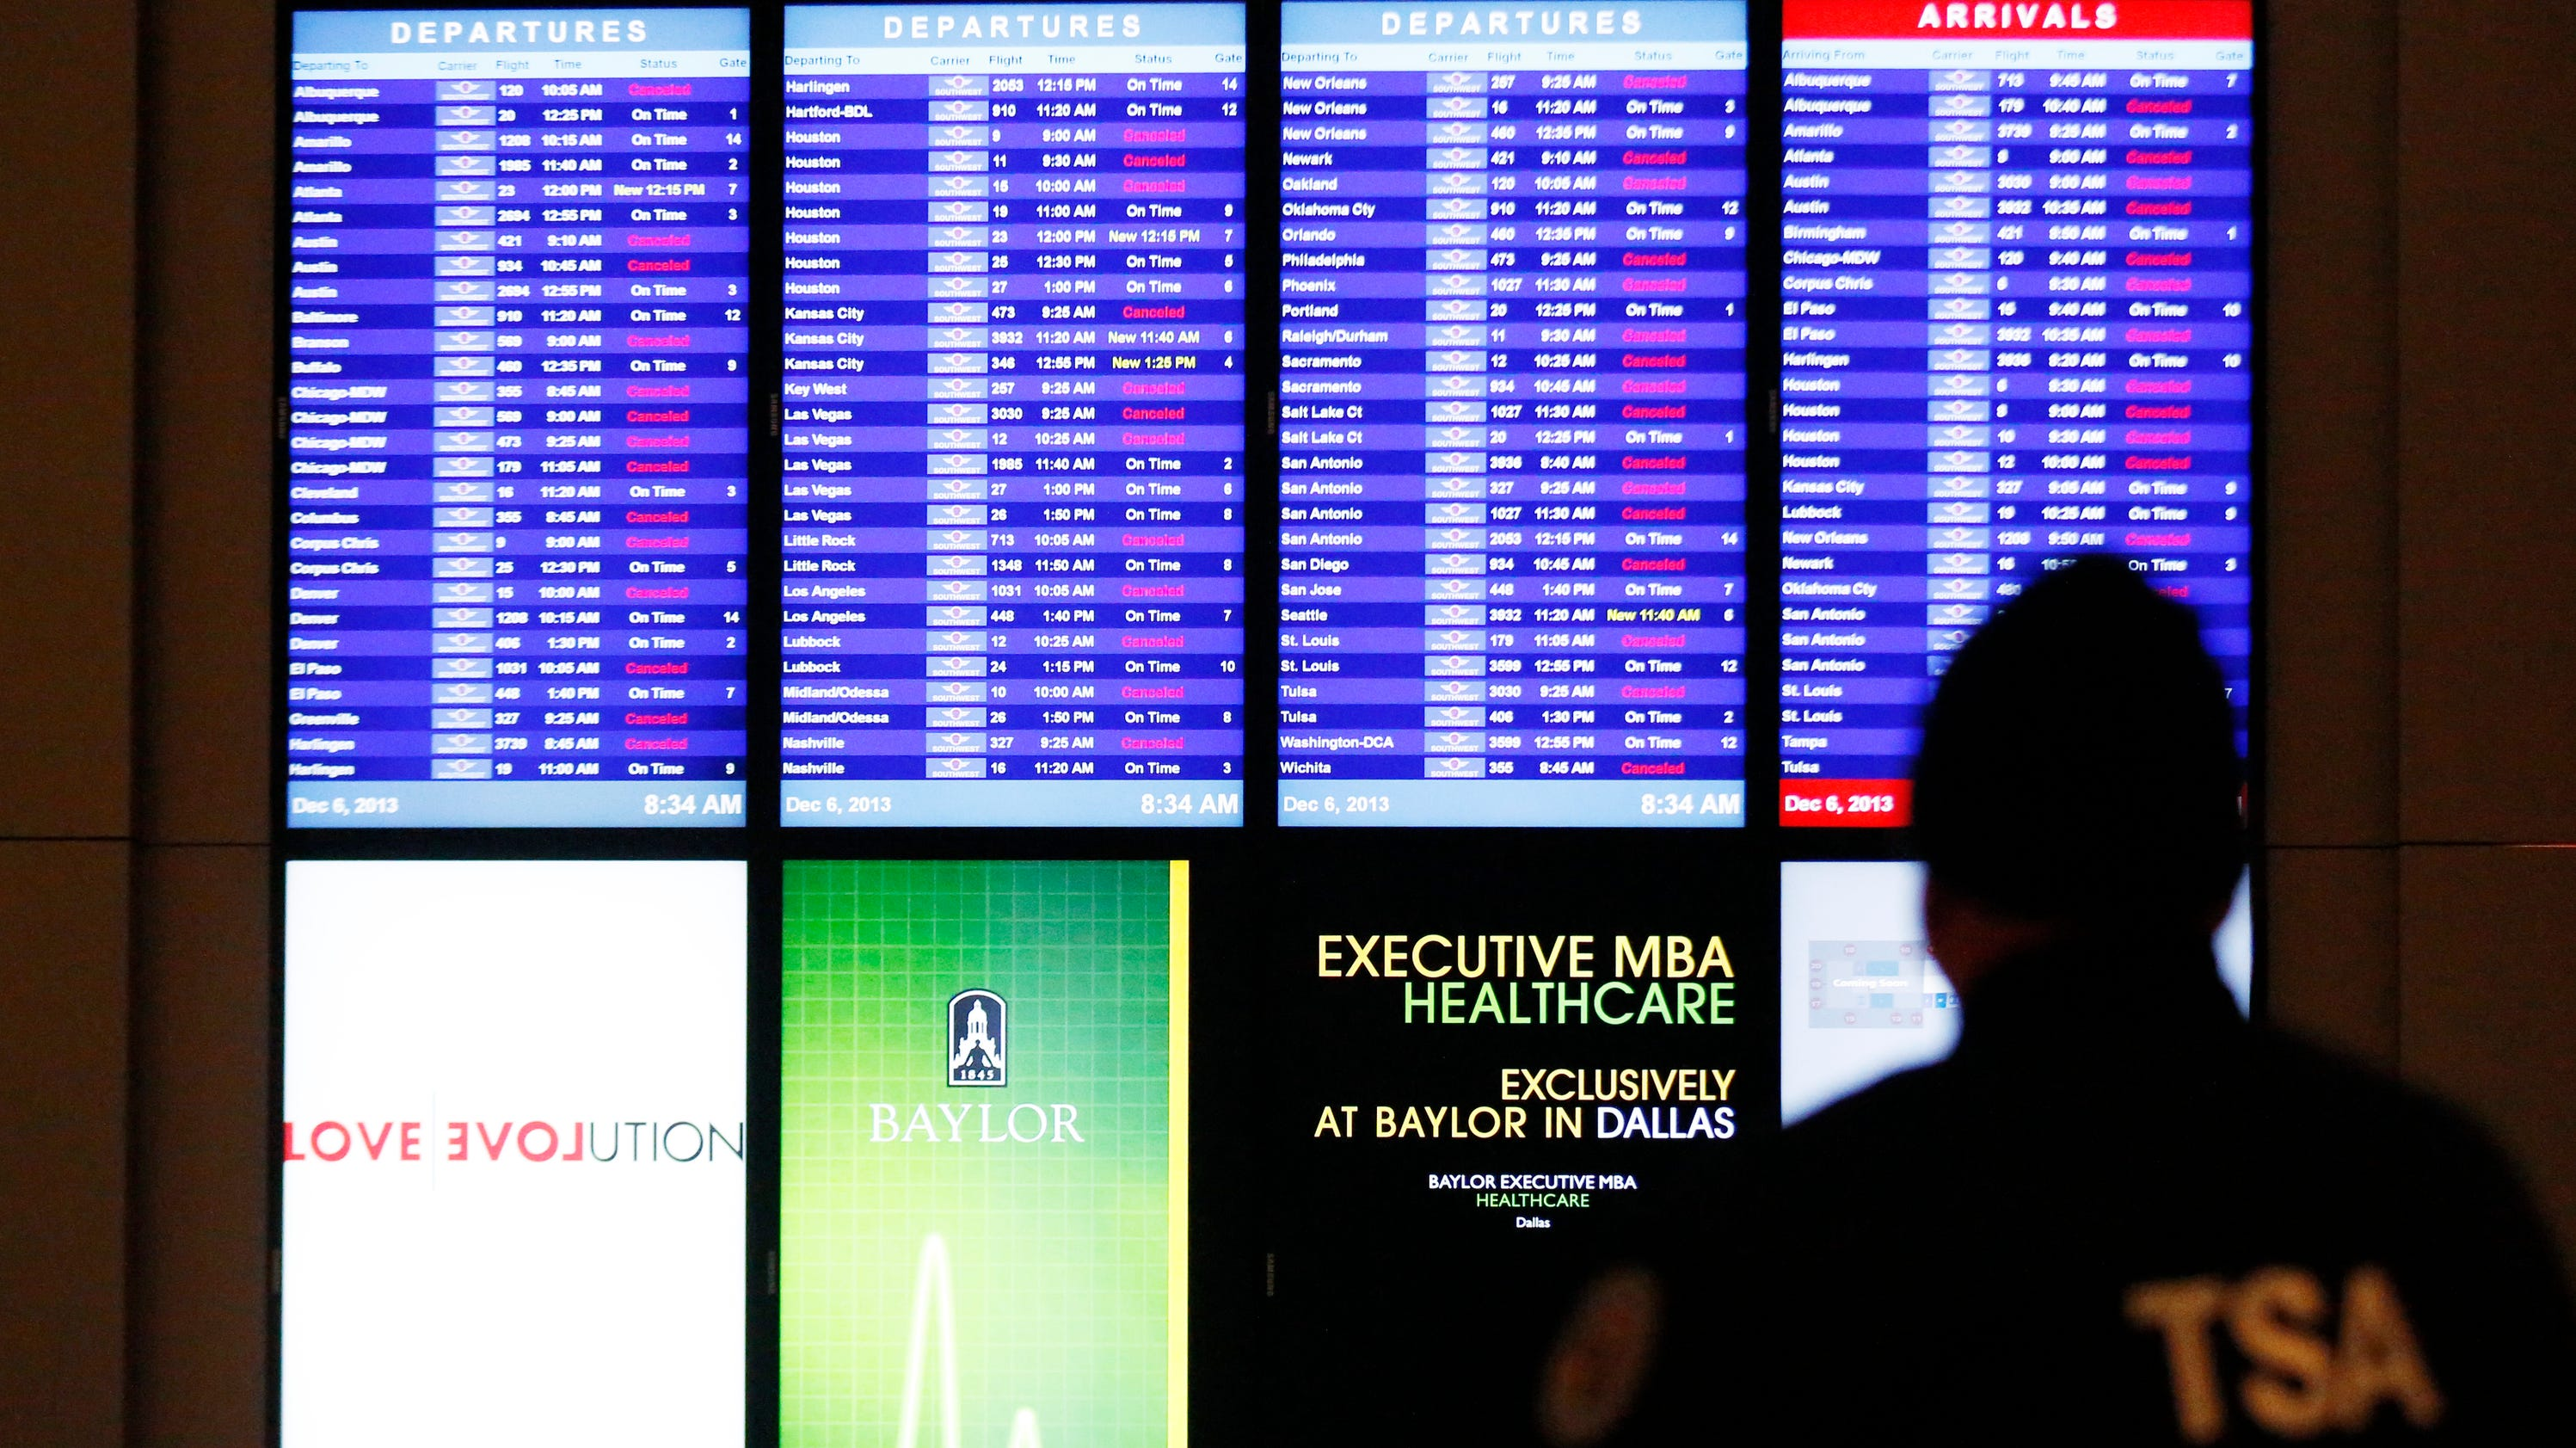 how to get out of airline change fees